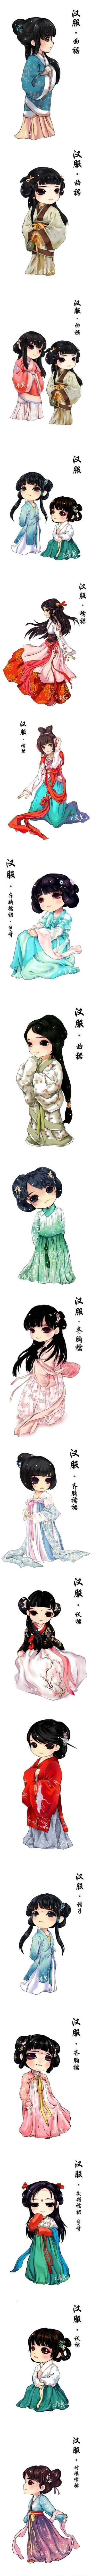 chinese historical clothes -- this whole collection of illustrations is to die for